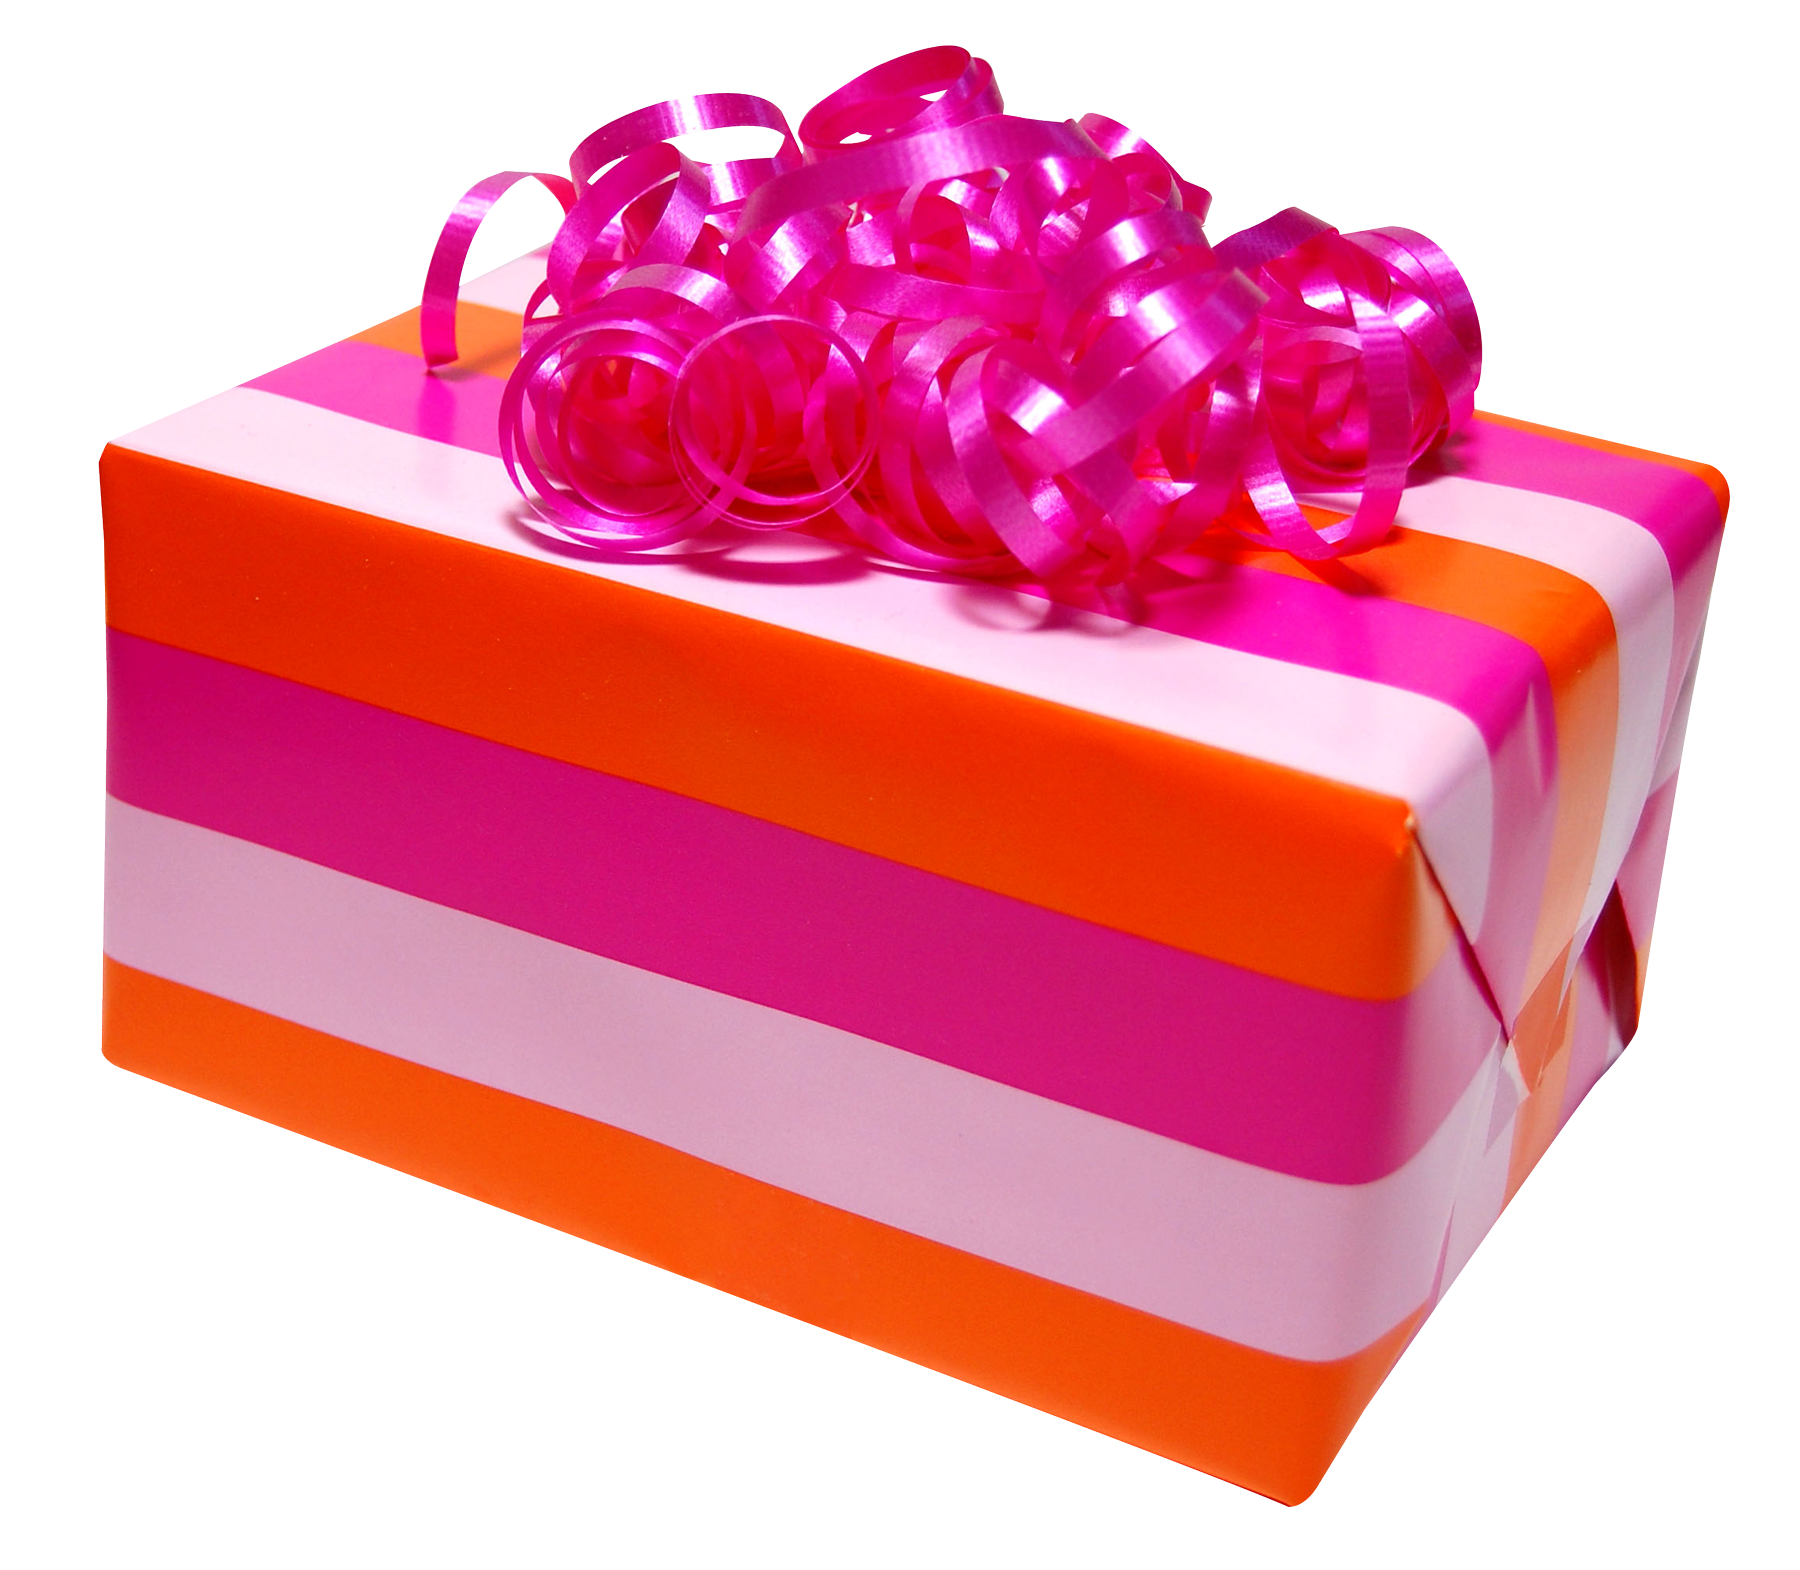 Birthday presents png. Gift image purepng free